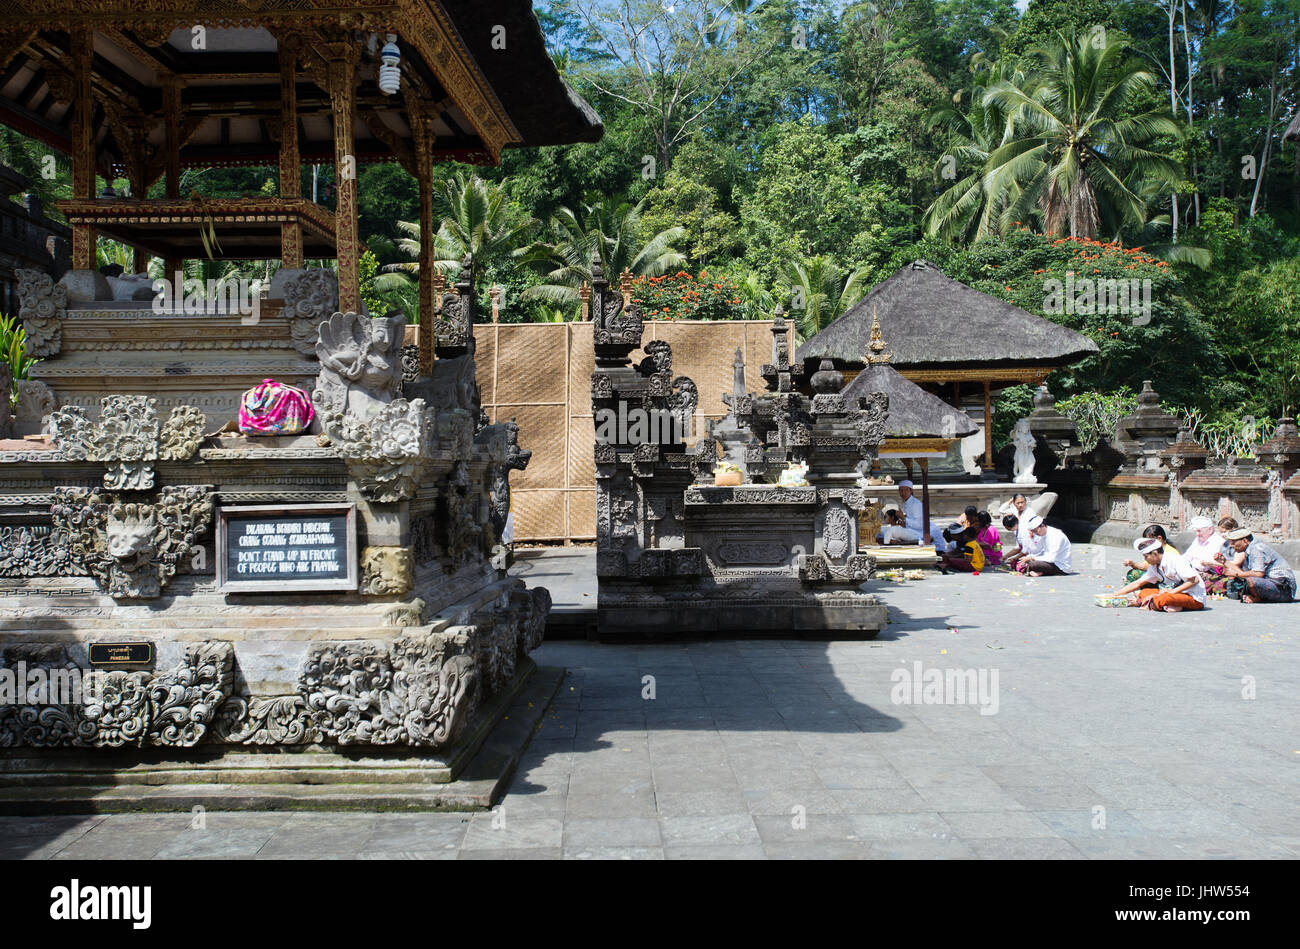 Balinese praying at Pura Tirta Empul Temple, Tampaksiring, Bali, Indonesia - Stock Image